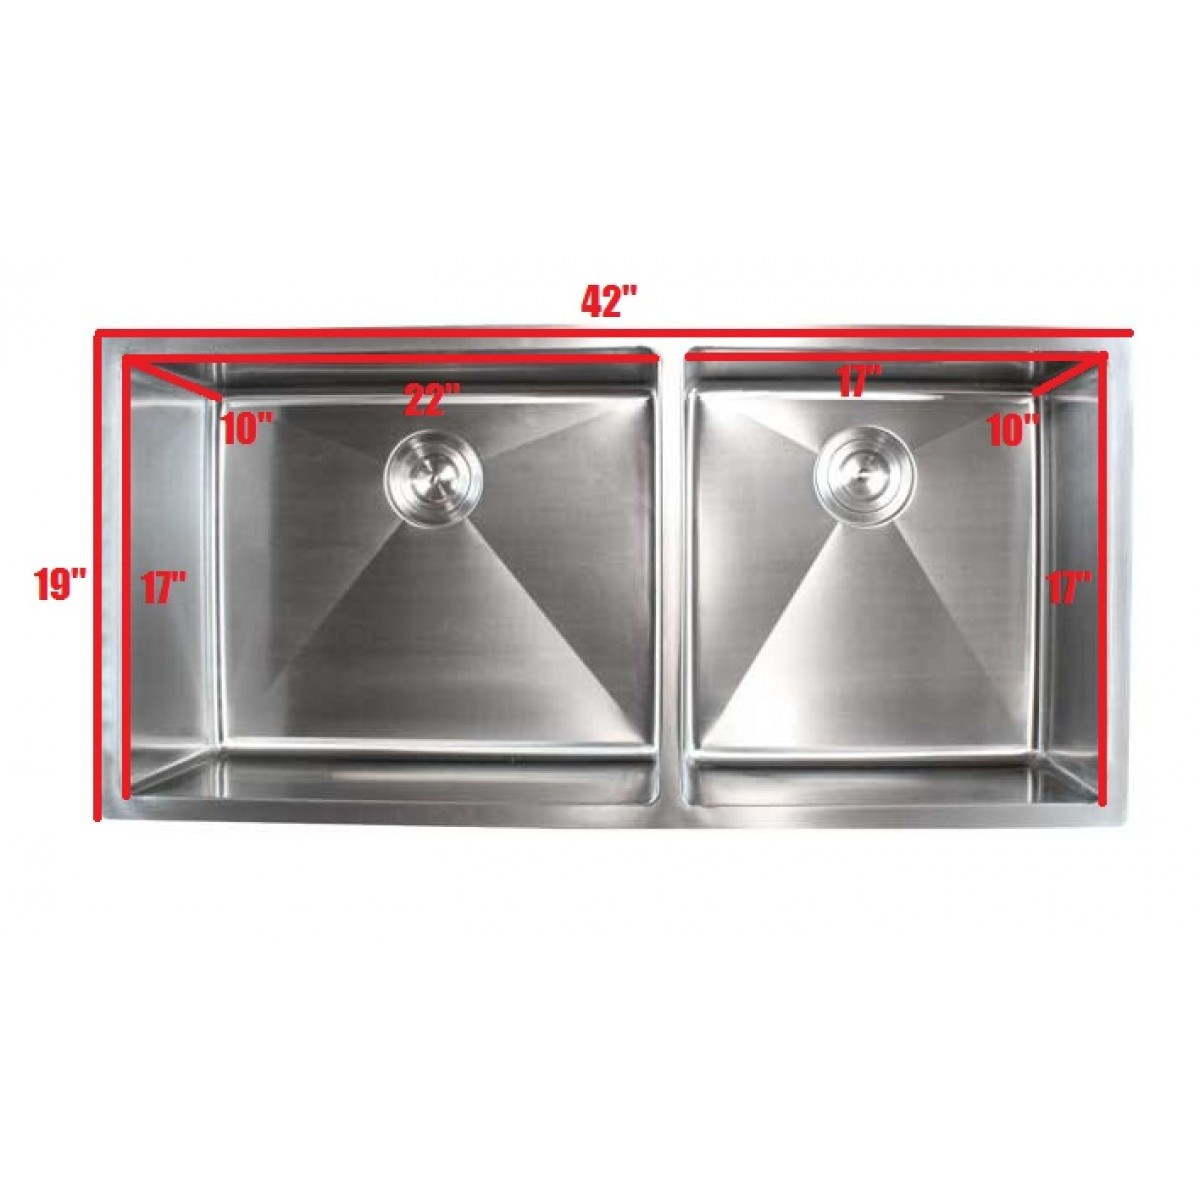 15 Contemporary Kitchen Designs With Stainless Steel: Ariel 42 Inch Stainless Steel Undermount Double Bowl